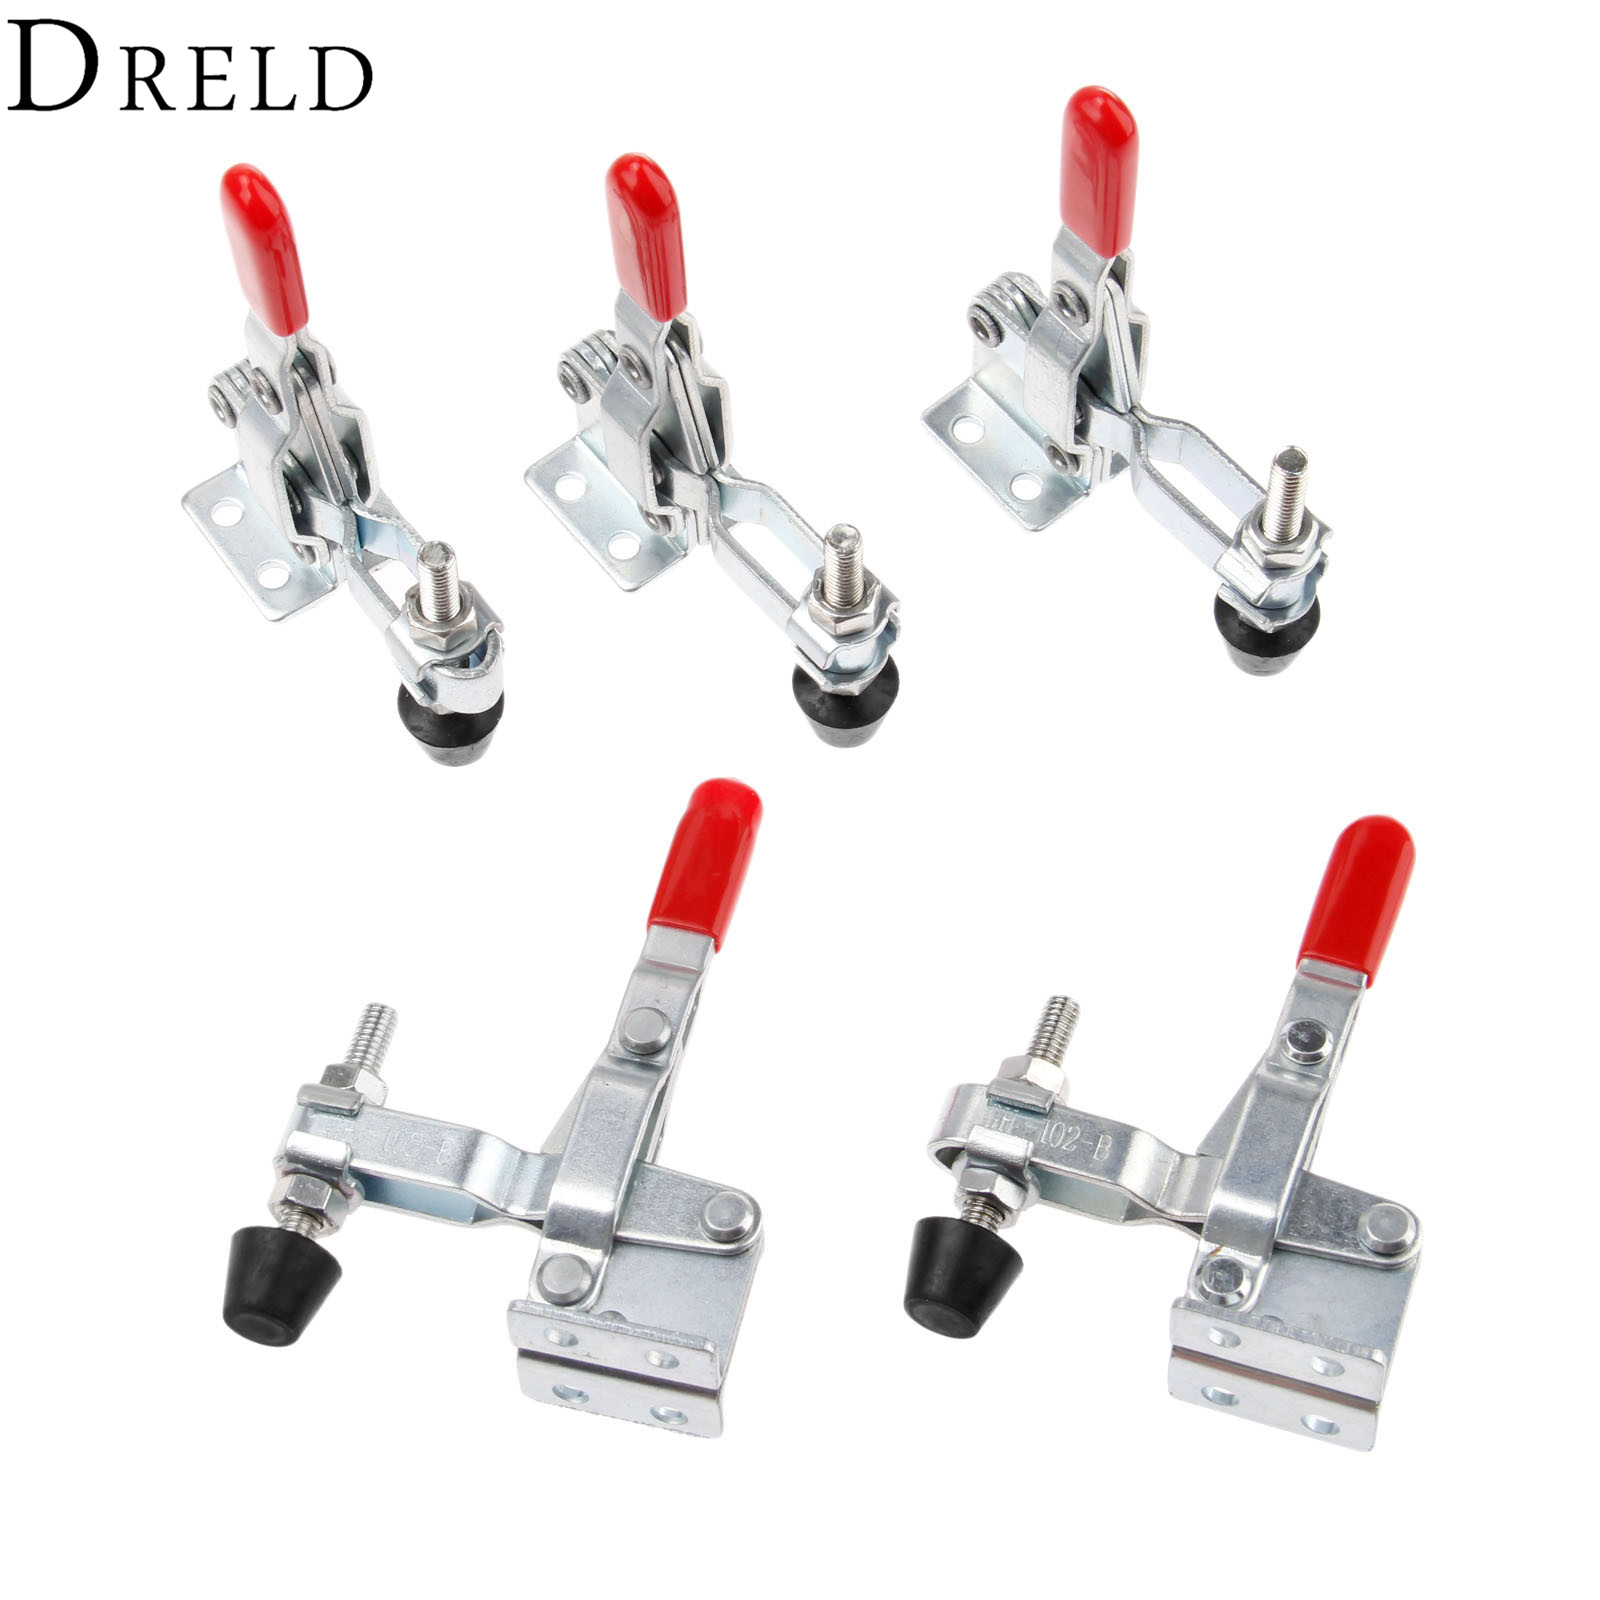 DRELD 5pcs GH-102-B Vertical Toggle Clamps Tool 100Kg/ 220 Lbs Holding Capacity Quick Release Fixture Toggle Clamp for Hand Tool